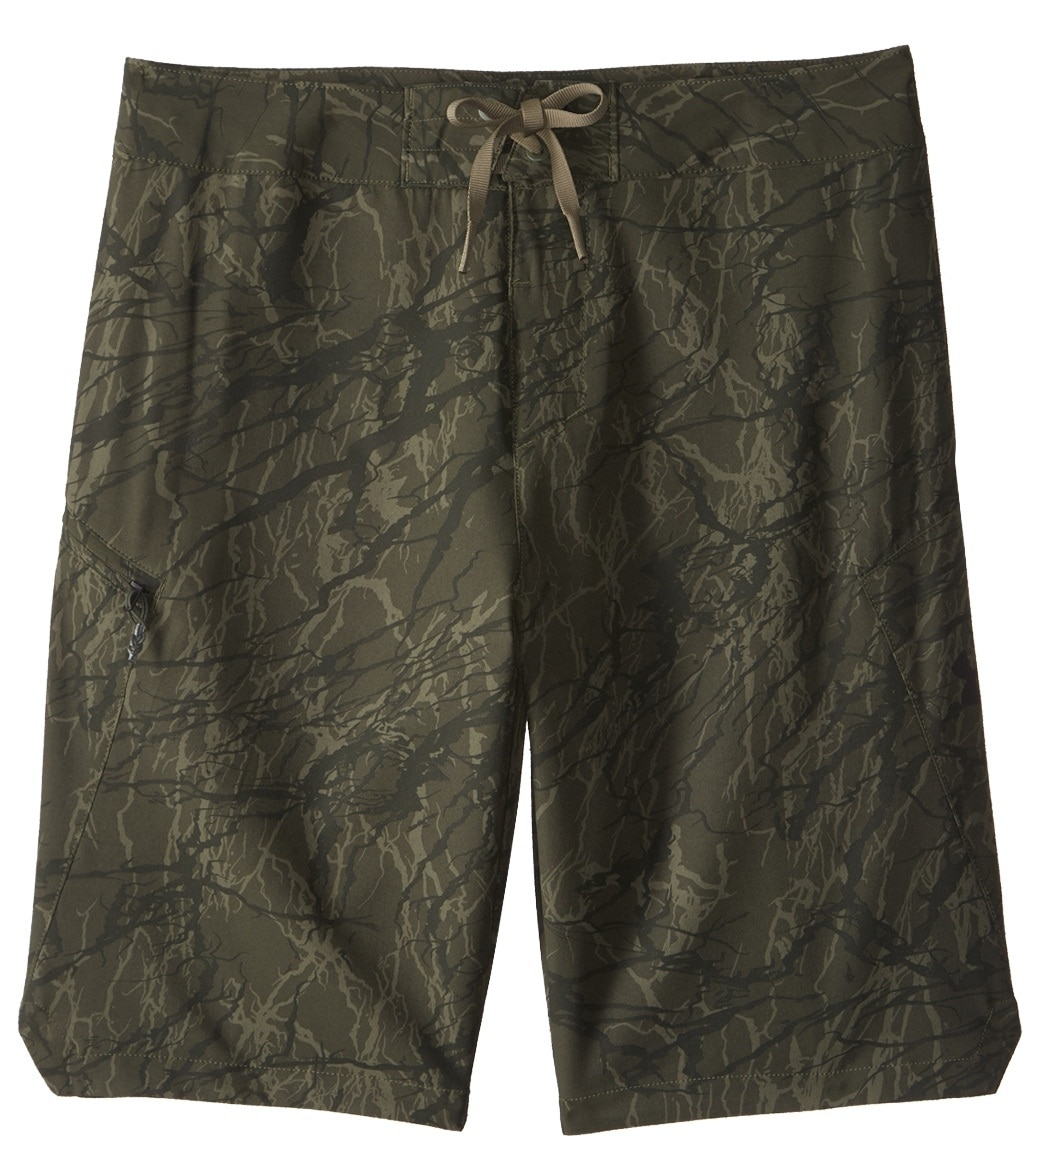 eaa75e733f756 Under Armour Men s Reblek Printed Boardshort at SwimOutlet.com - Free  Shipping